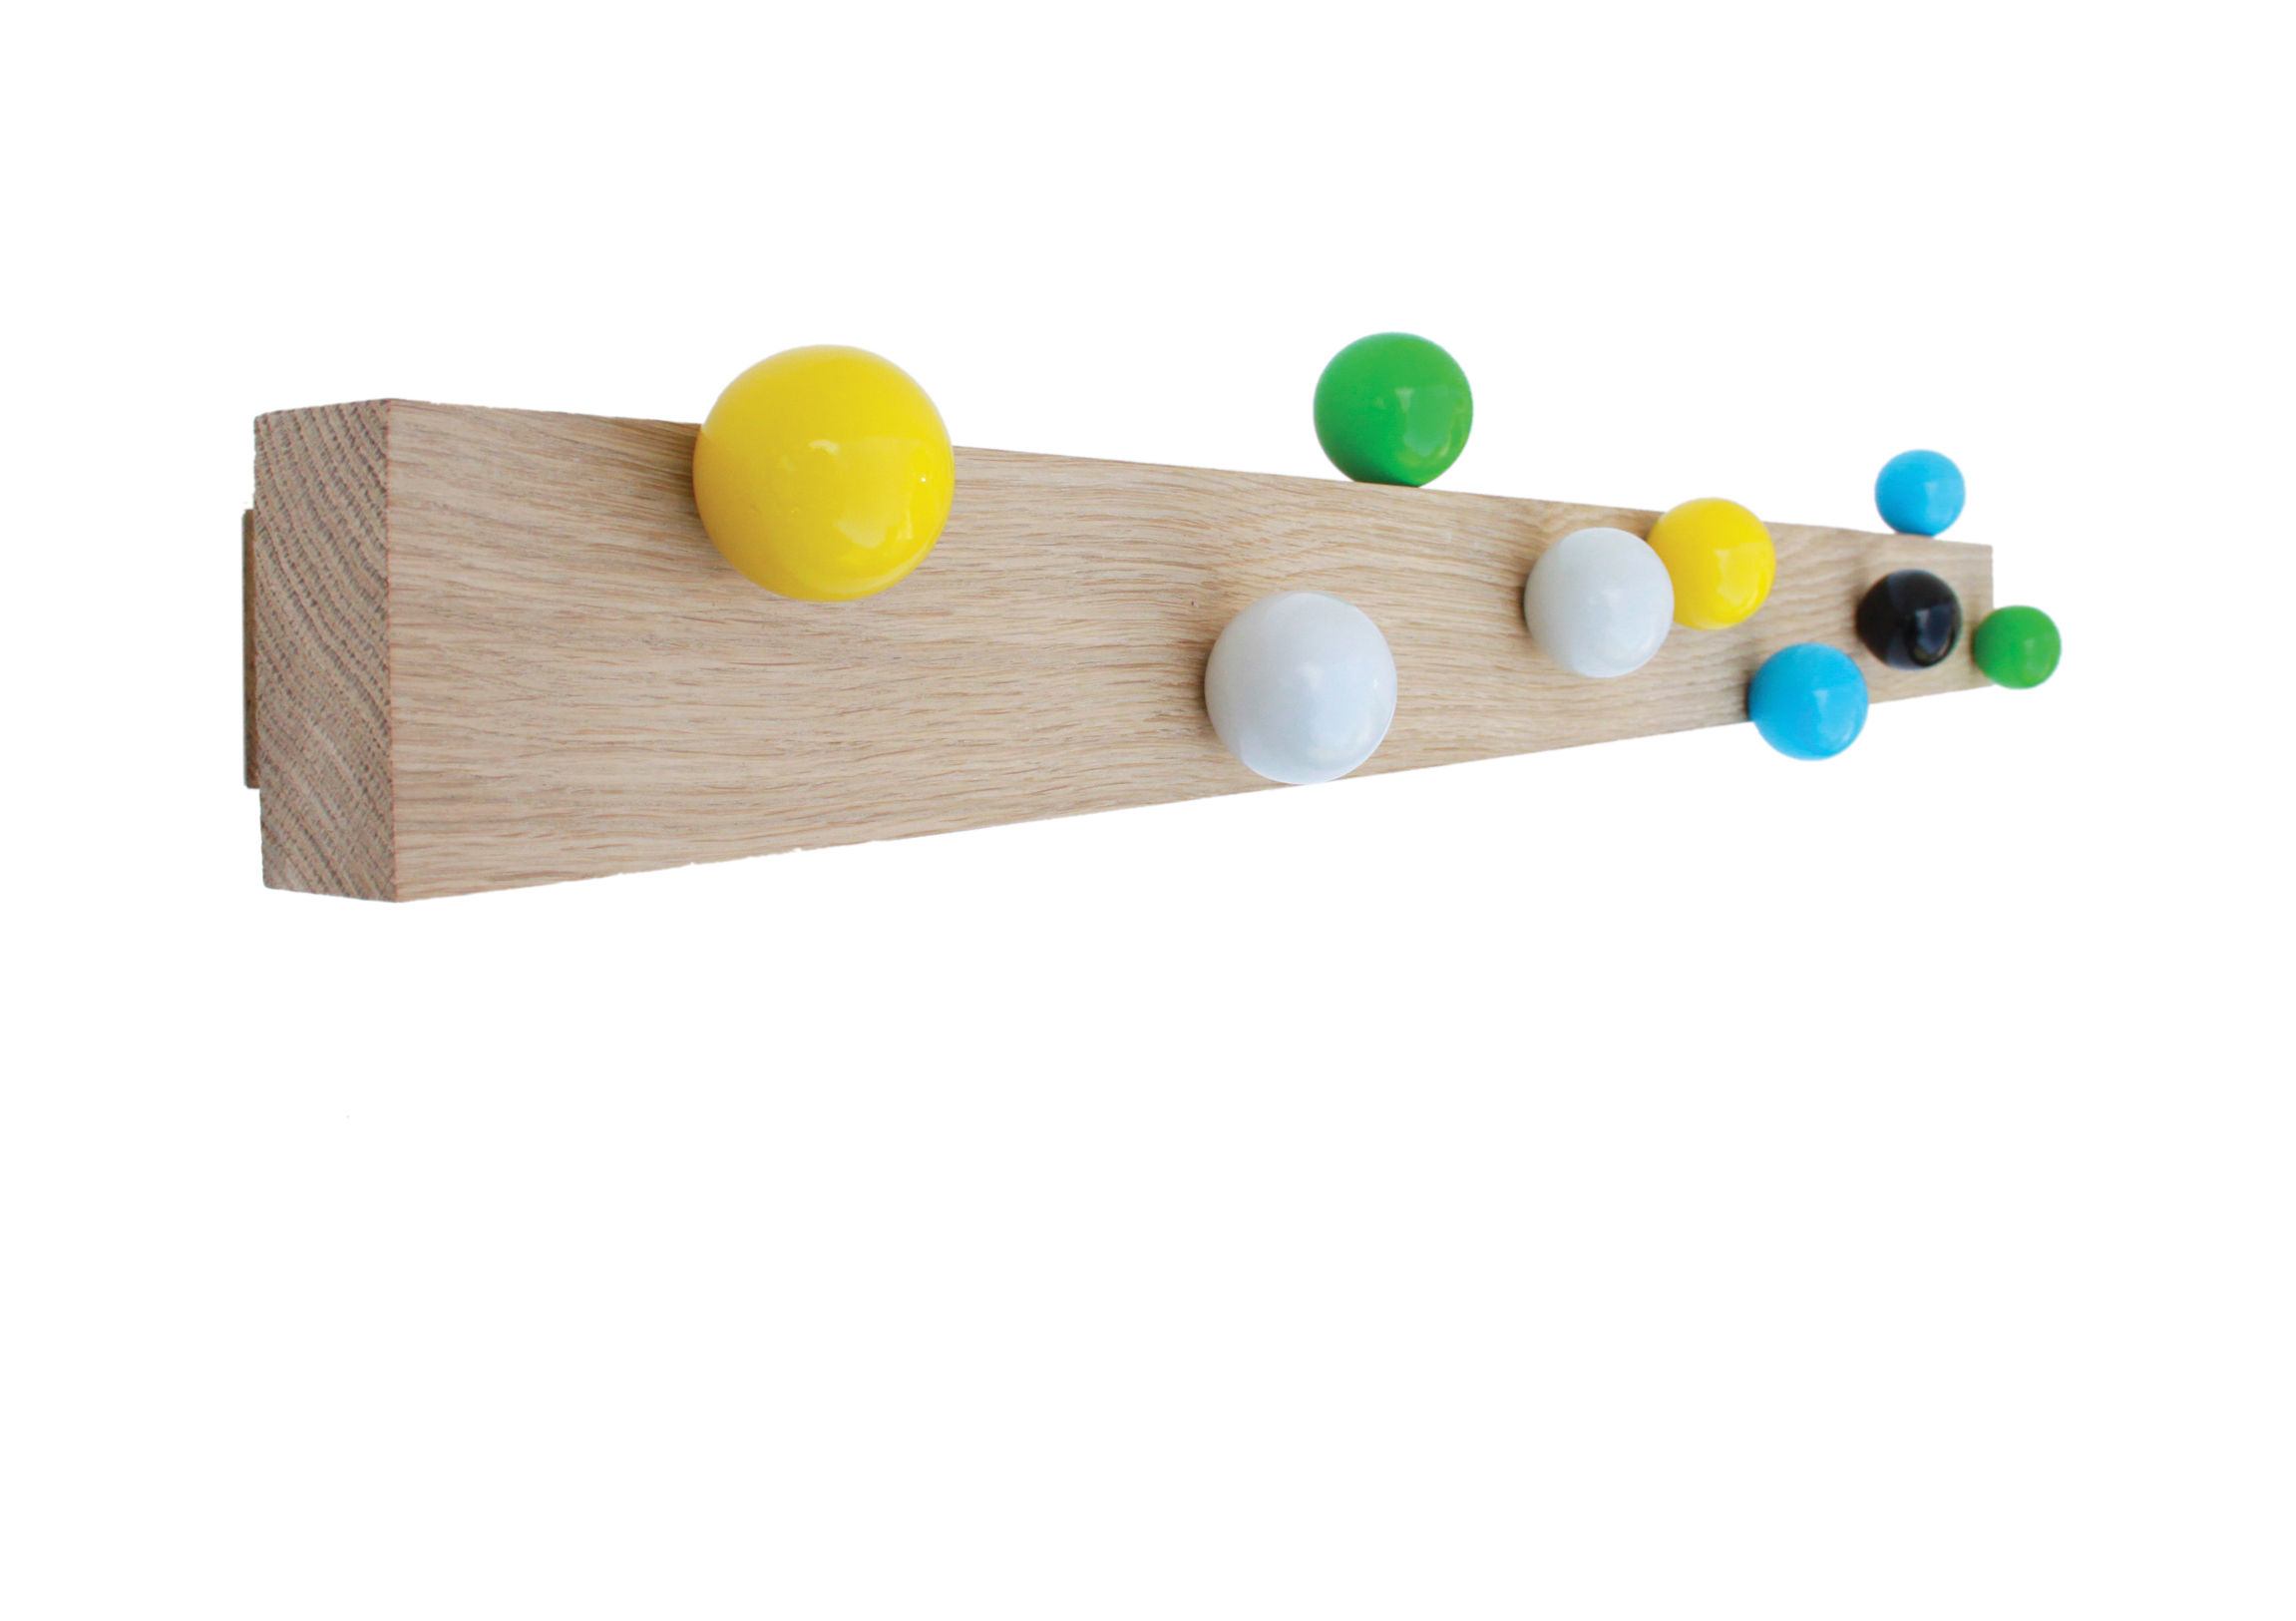 Furniture - Coat Racks & Pegs - Roll hooks Wall coat rack - / 9 patères by Thelermont Hupton - Chêne naturel / Multicolore - Beechwood, Solid oak